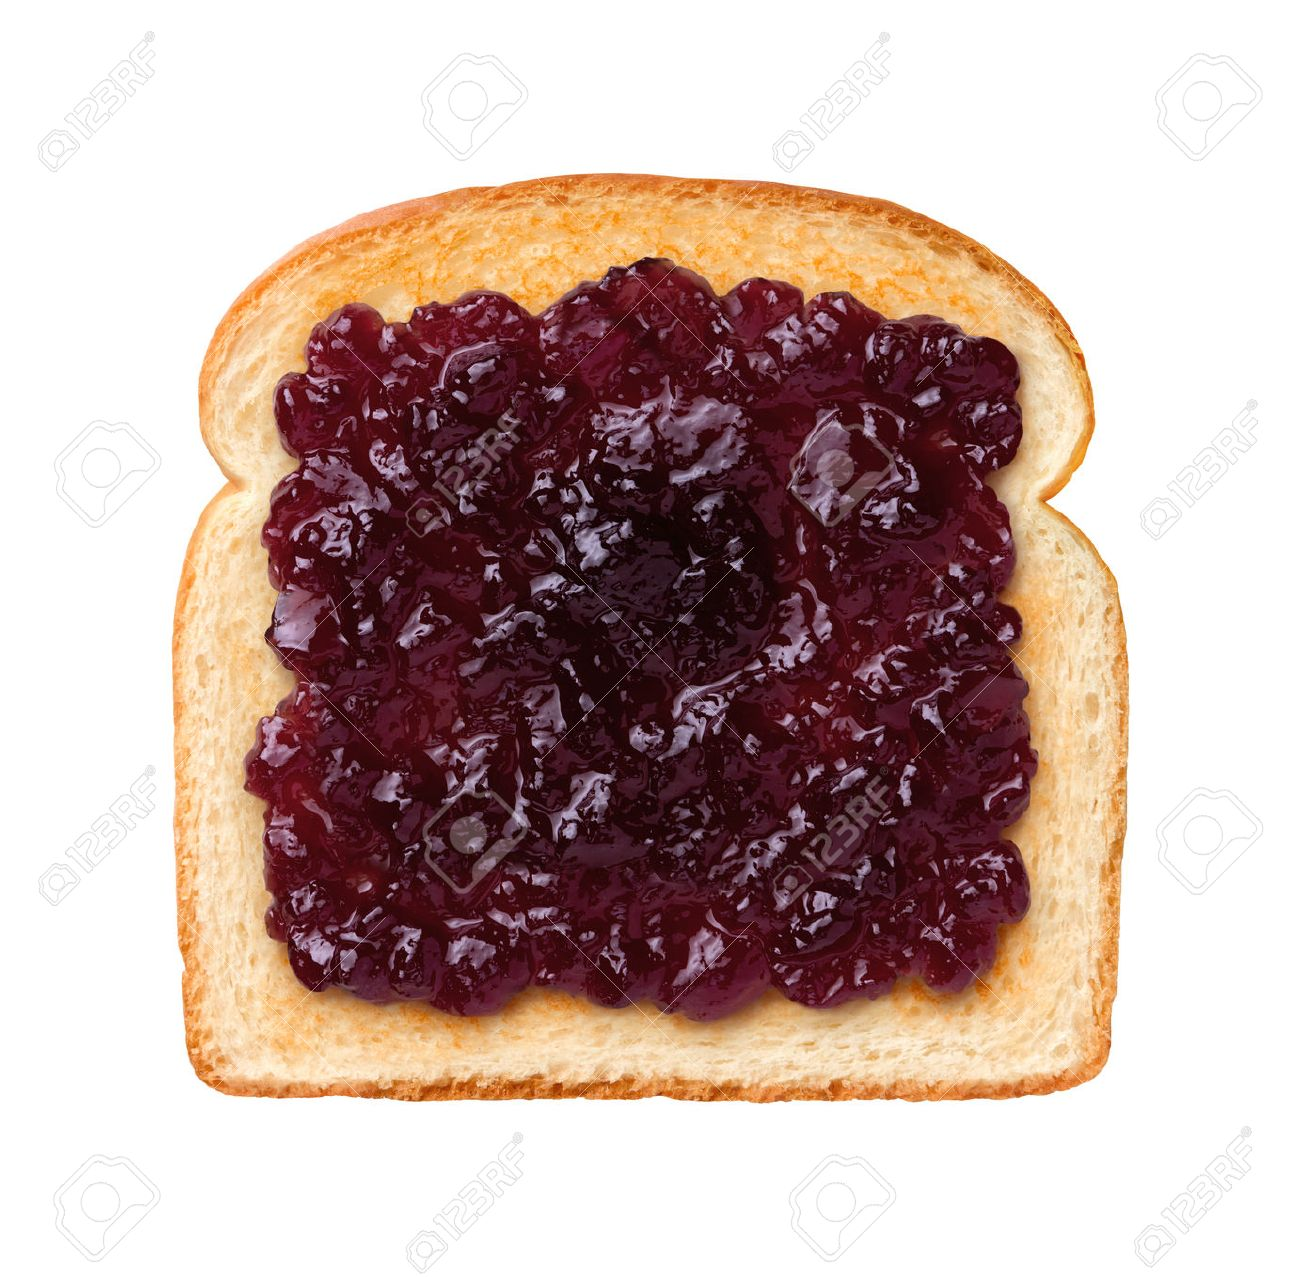 Aerial View Of A Single Slice Of Toast With Grape Jelly Or Jam Stock Photo Picture And Royalty Free Image Image 33993974